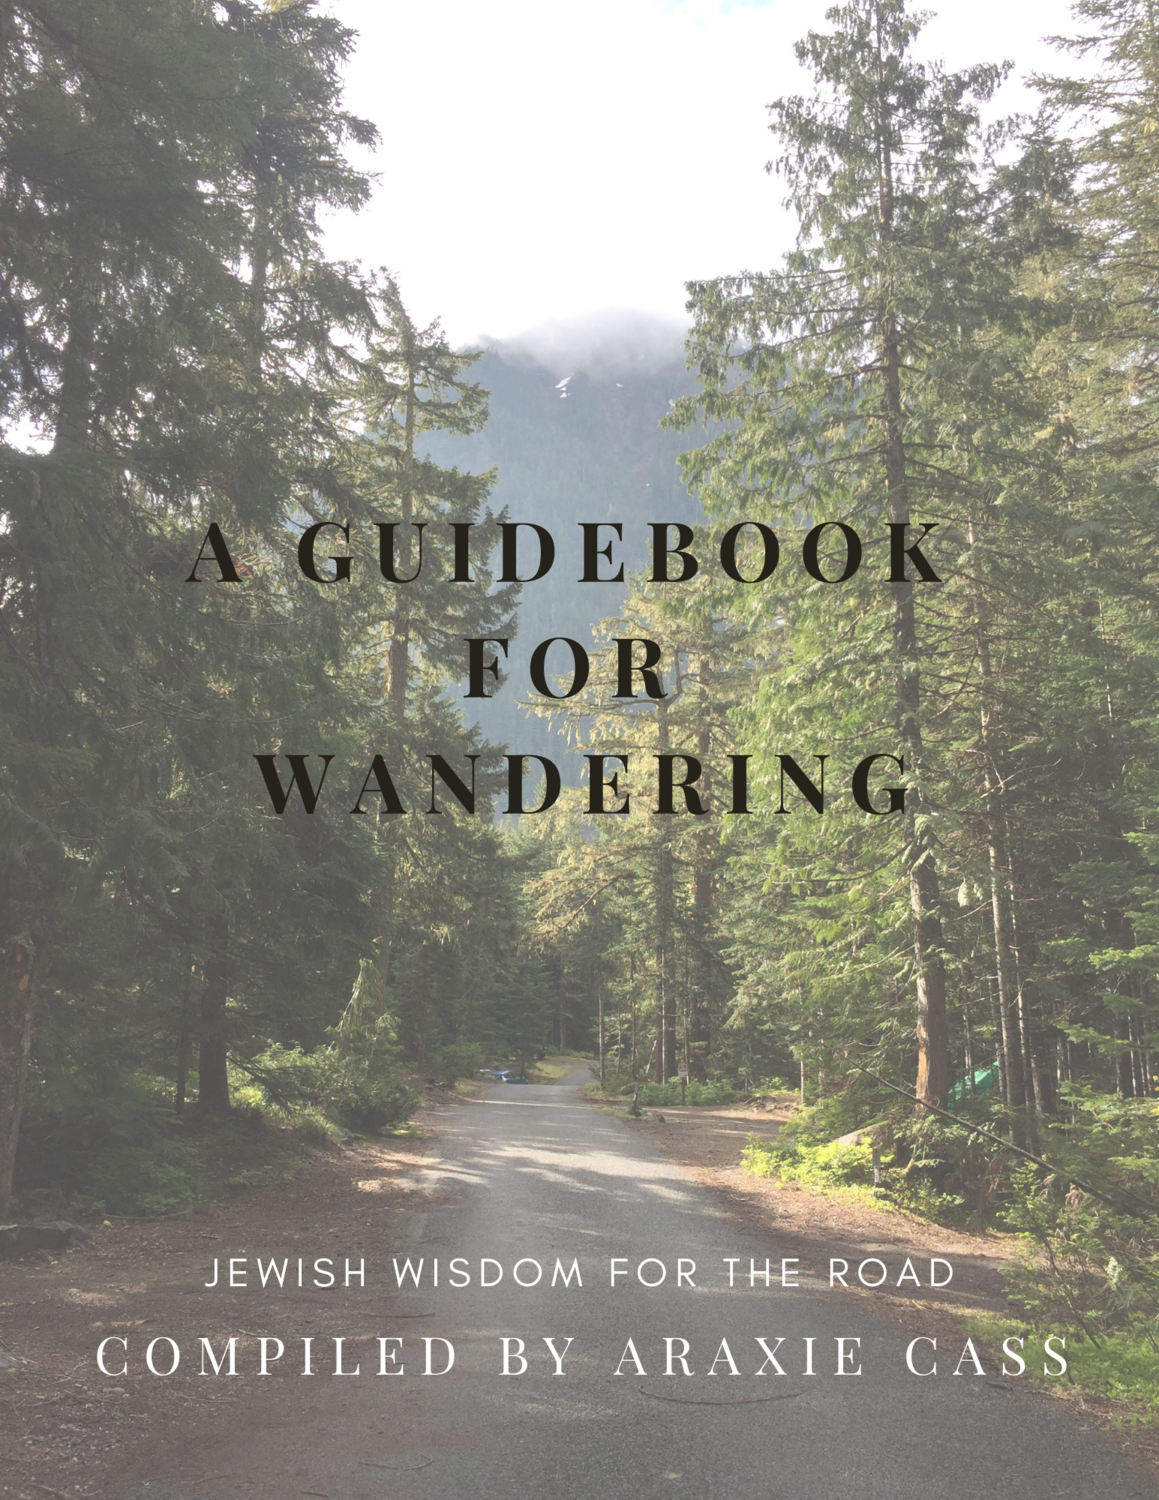 A Guidebook for Wandering